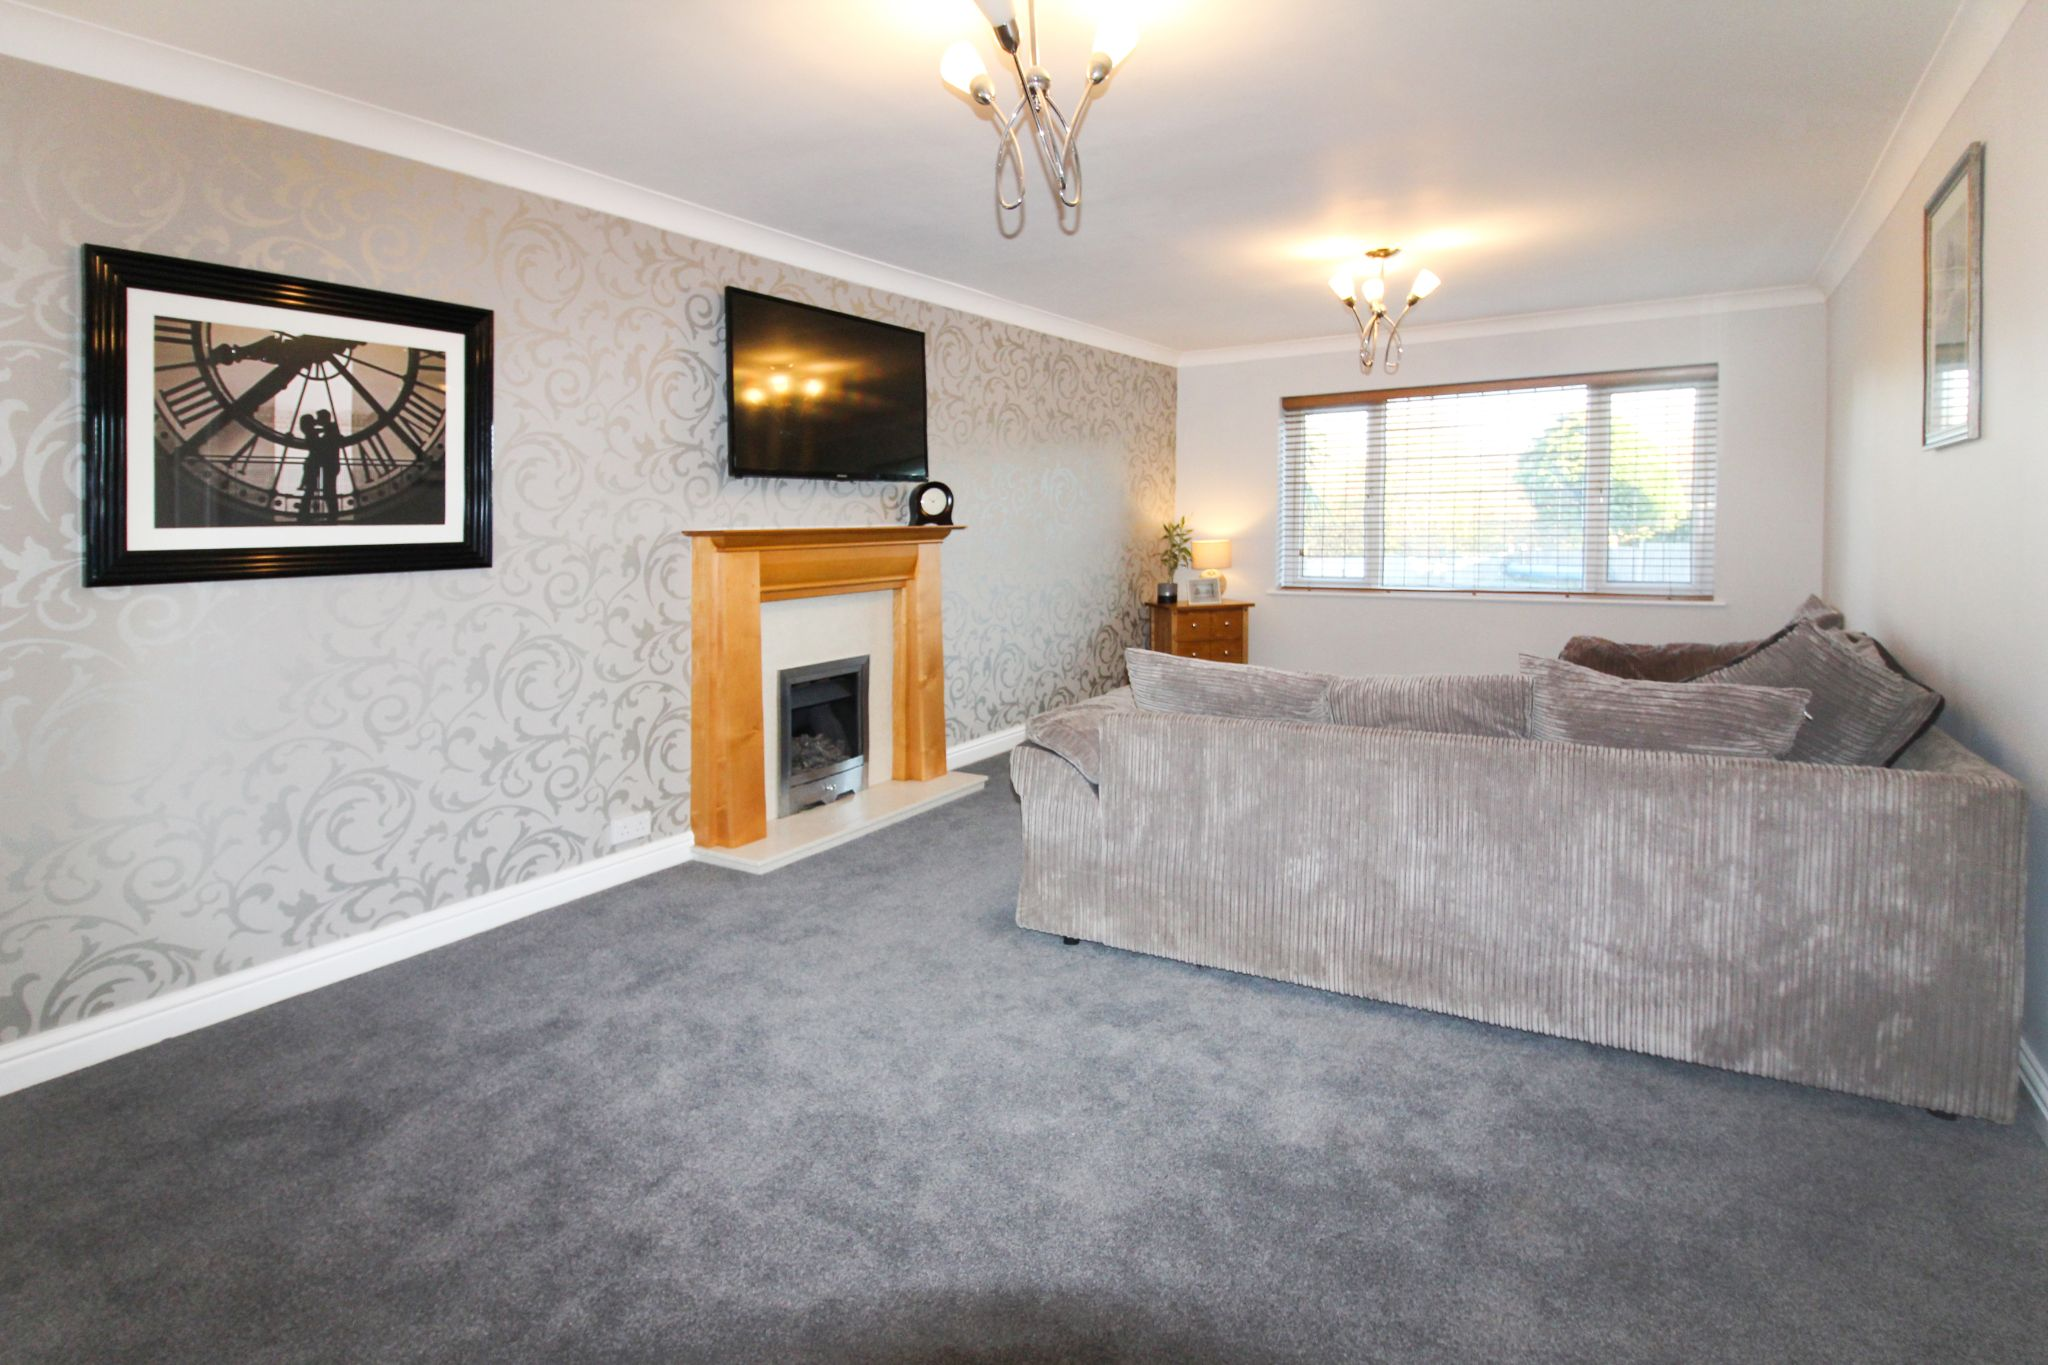 6 bedroom detached house SSTC in Solihull - Photograph 4.